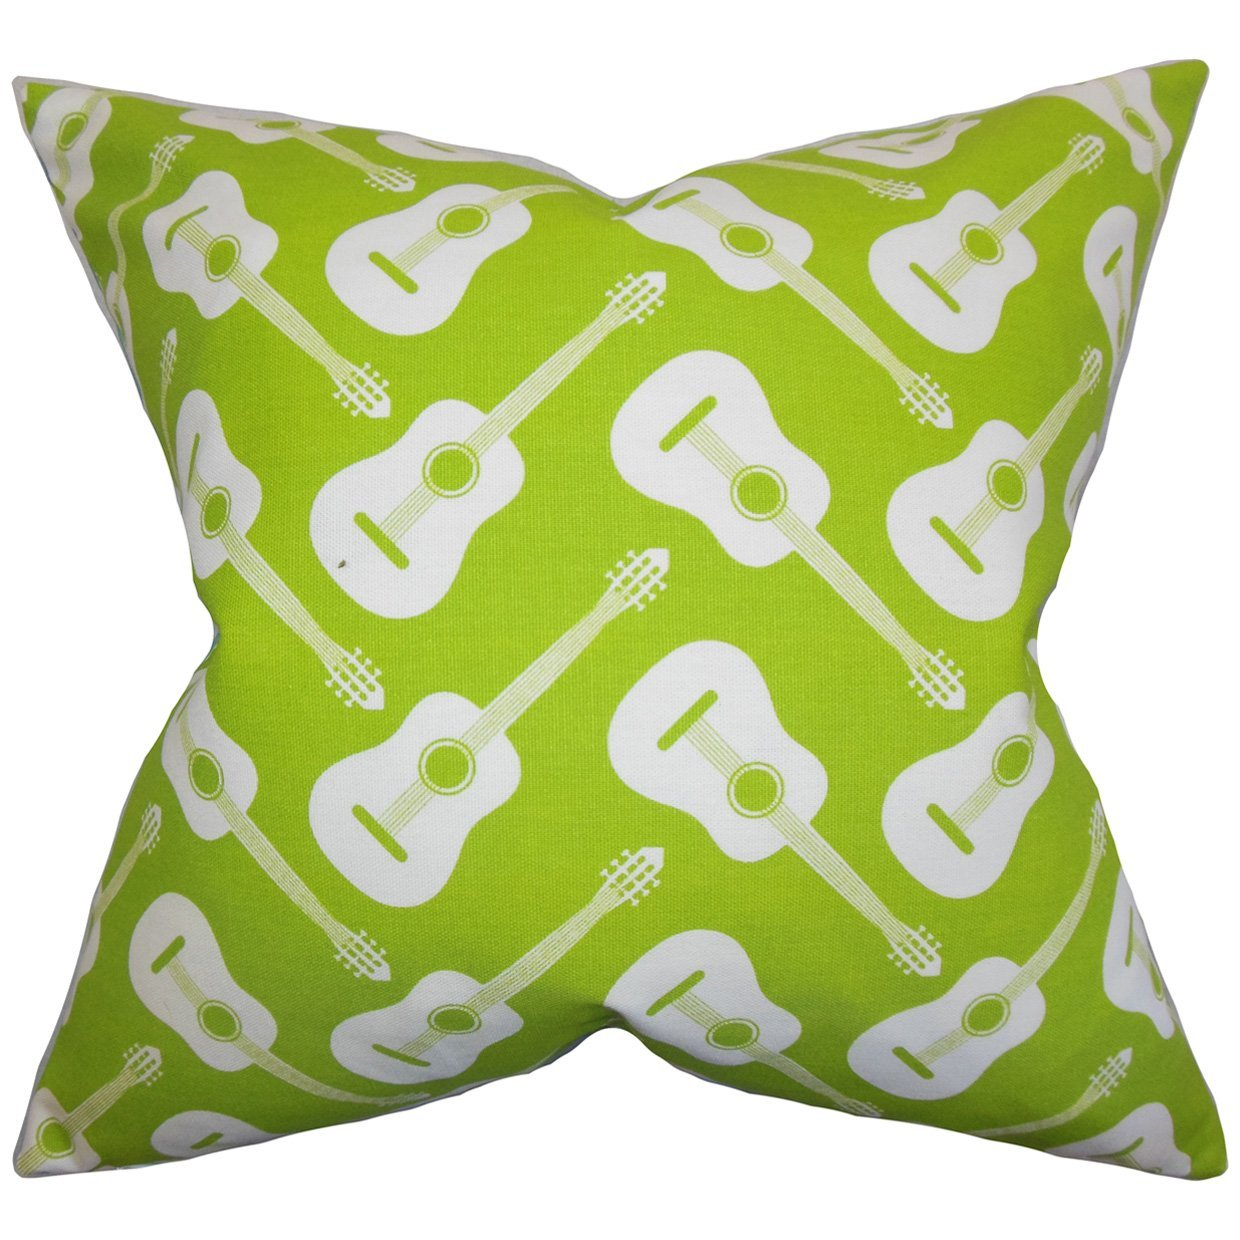 The Pillow Collection P18FLAT-PP-ACOUSTIC-CHARTREUSE-C10 Roxie Geometric Throw Pillow Cover 18 x 18